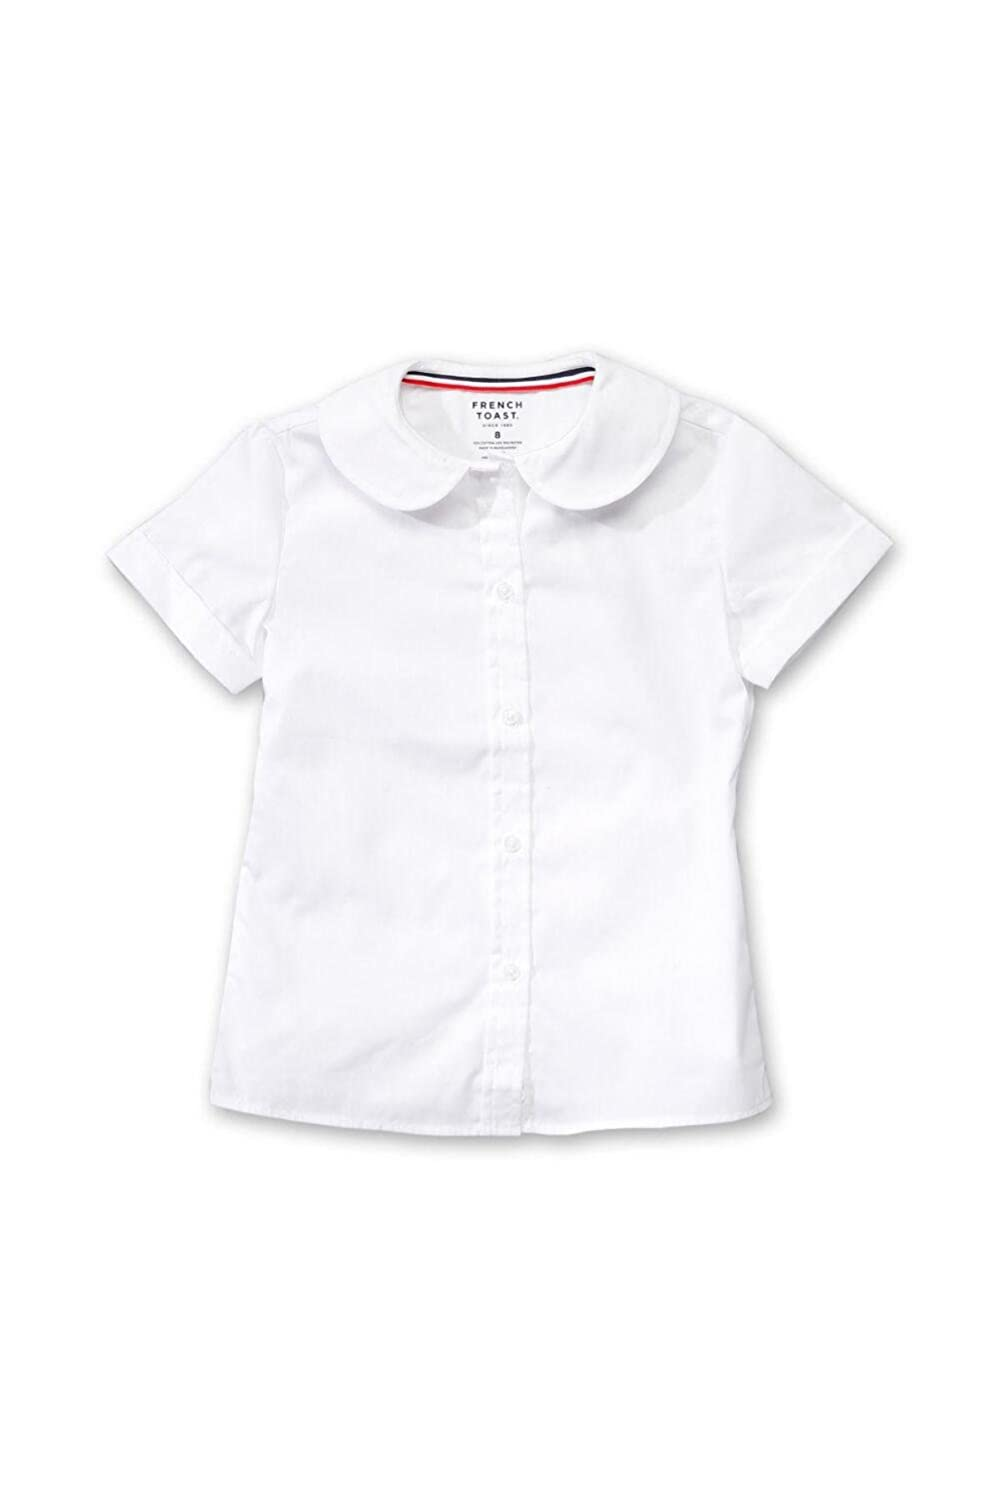 French Toast Little Girls' Short Sleeve Peter Pan Blouse (White - 6X) E9320-A